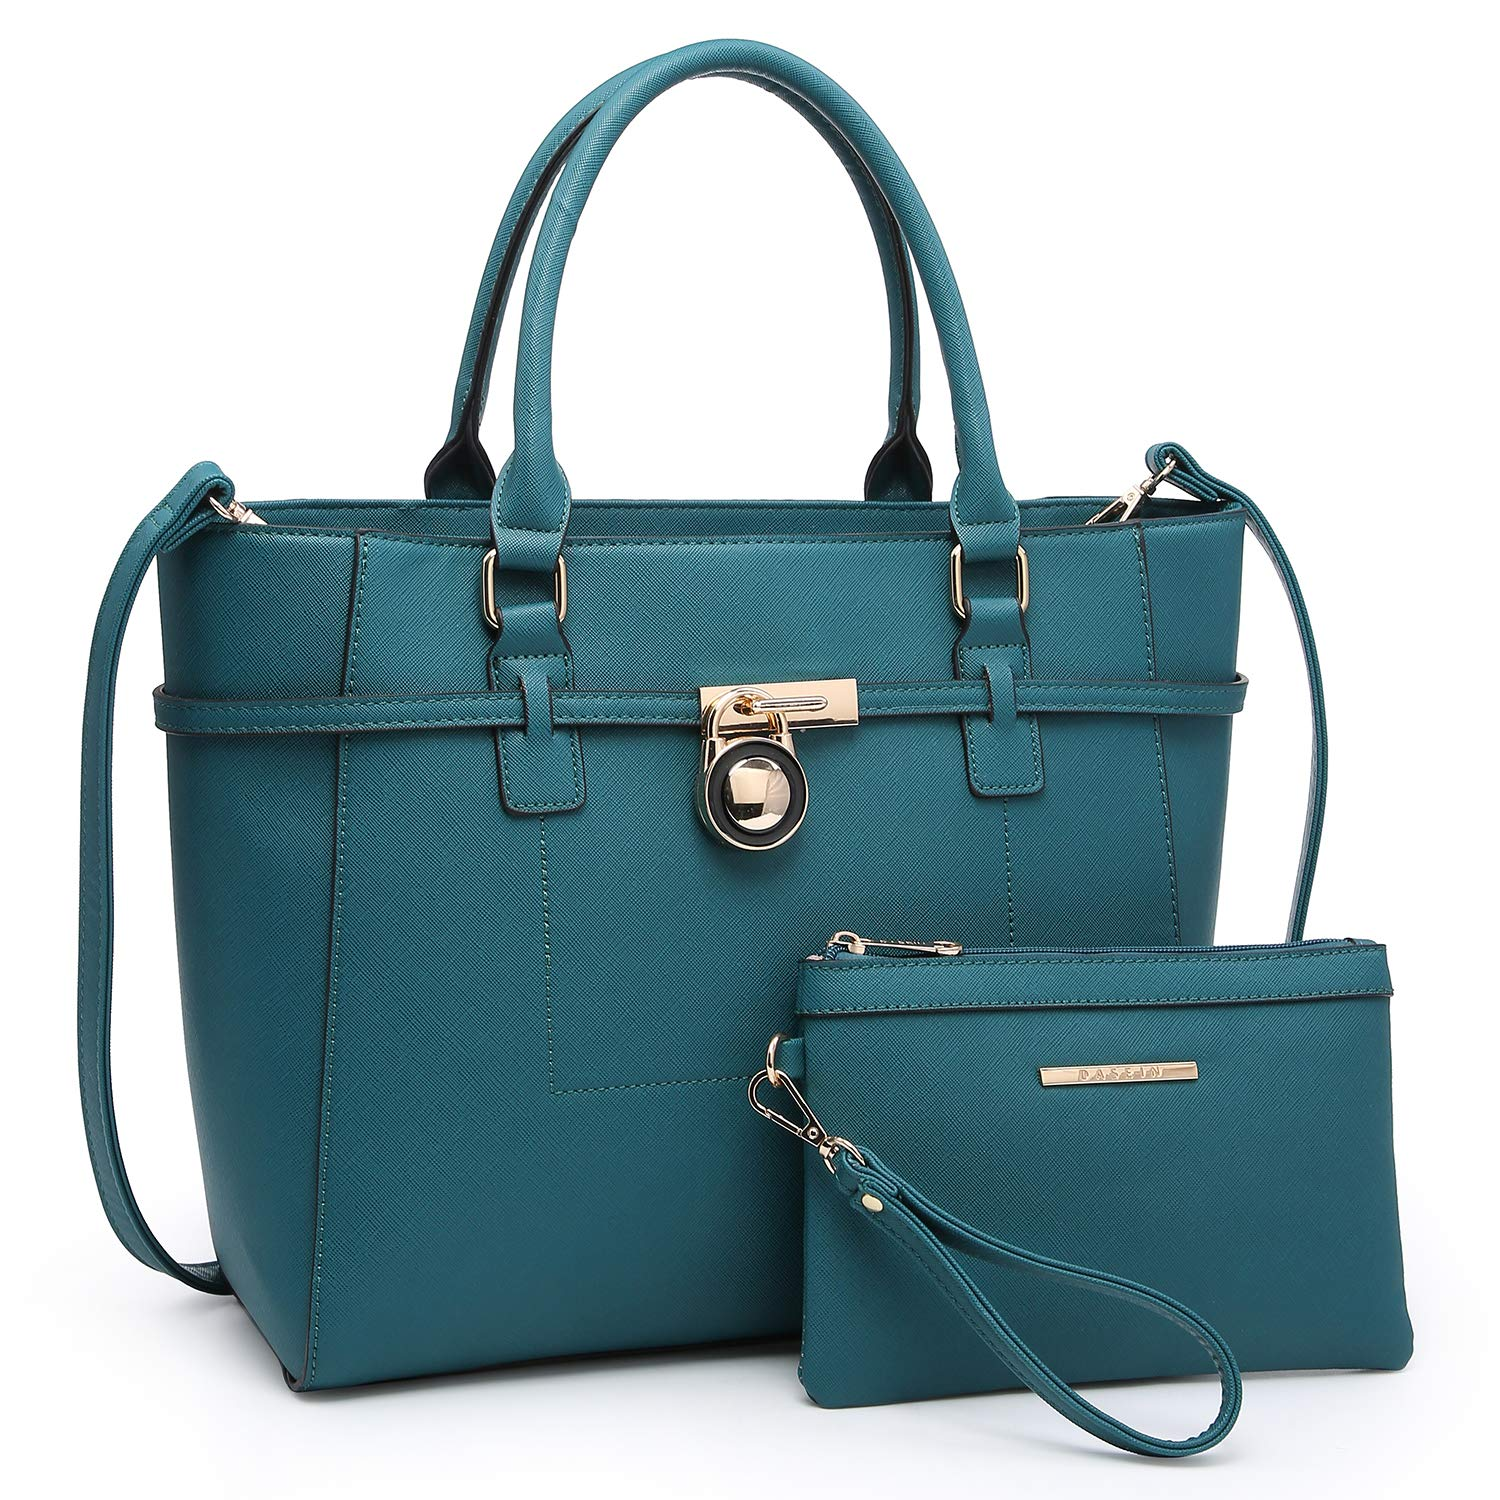 Handbags for Women Tote Bag Shoulder Bag Top Handle Satchel Hobo Purse 2pcs w/Padlock (Teal Blue)